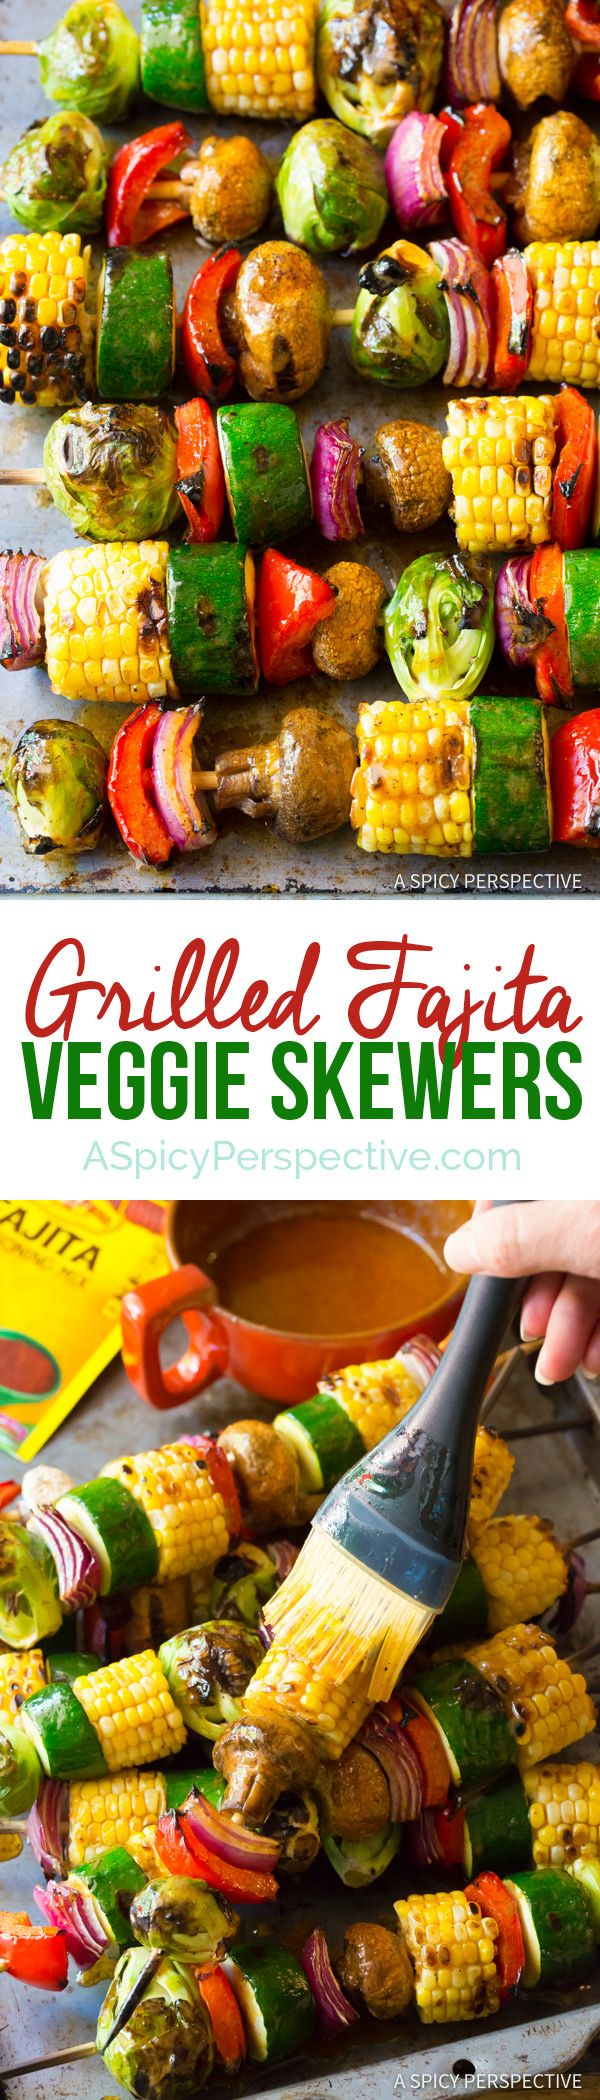 Sizzling Grilled Fajita Vegetable Skewers | ASpicyPerspective.com via @spicyperspectiv